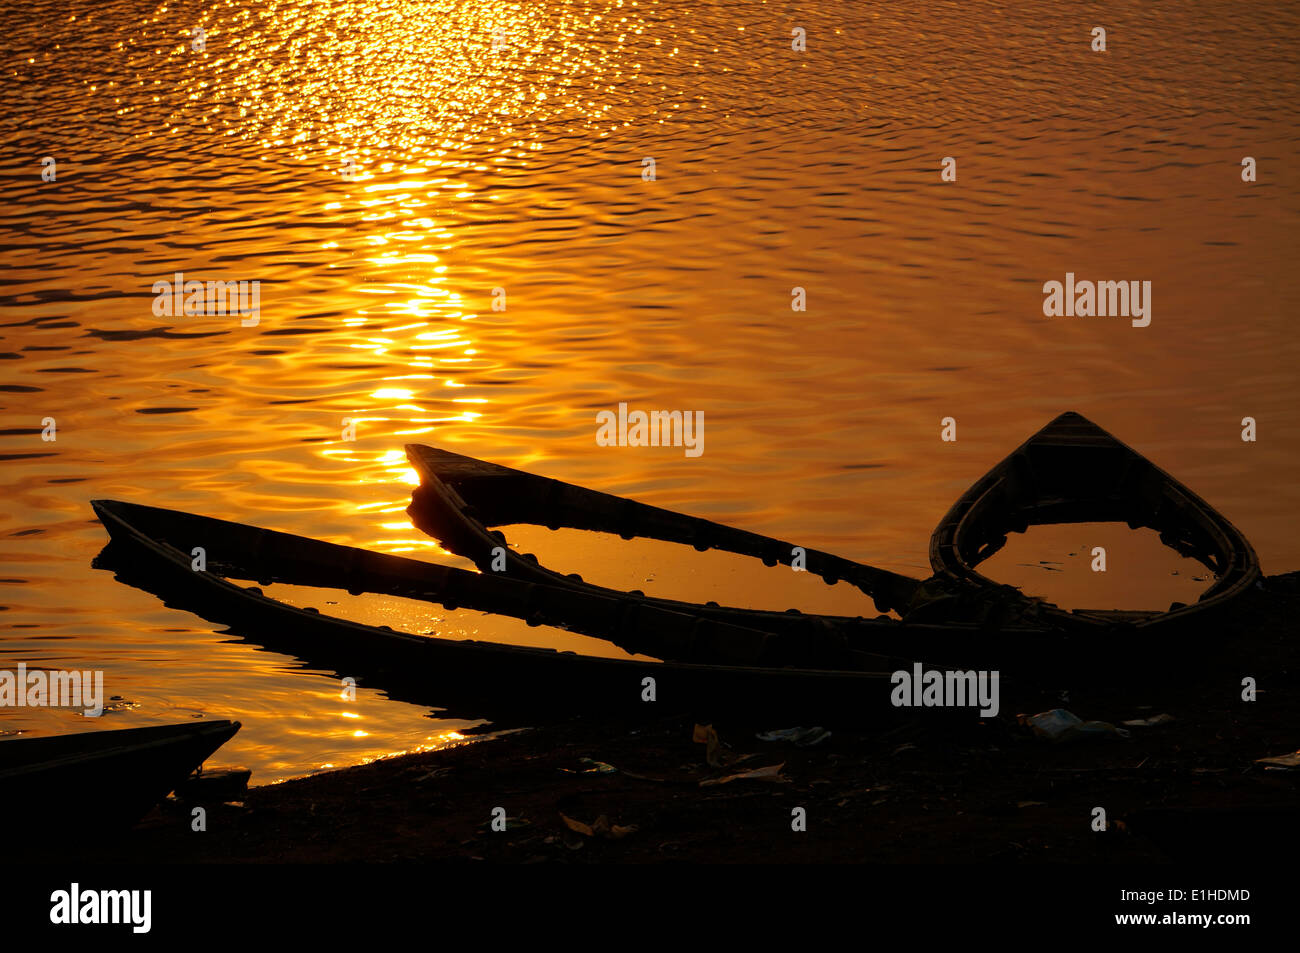 Tree wooden boats fill with water at the sun set - Stock Image